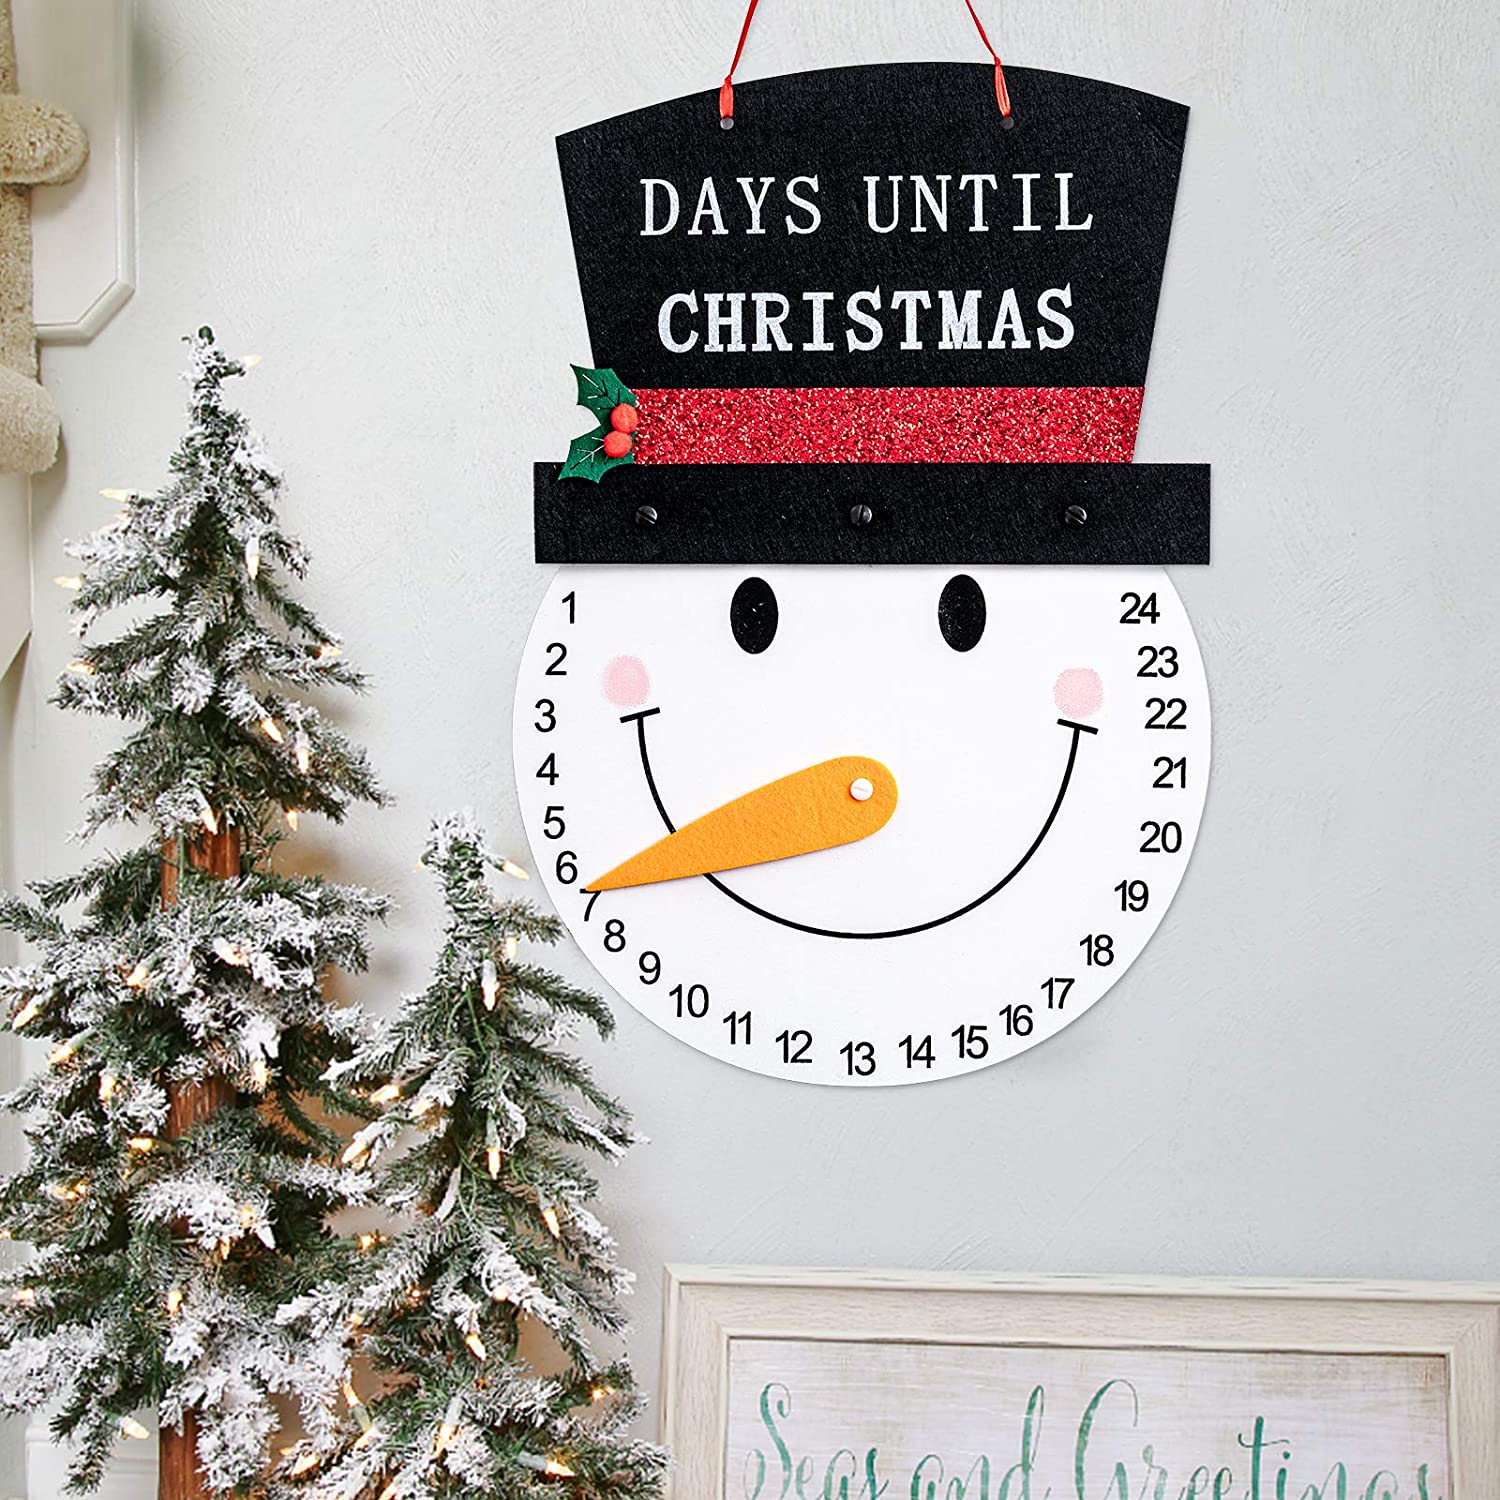 hogardeck 13IN Snowman Advent Calendar 2020, Christmas Decoration Indoor/Outdoor Hanging Sign, Days Until Christmas Countdown, Holiday Wall Decor